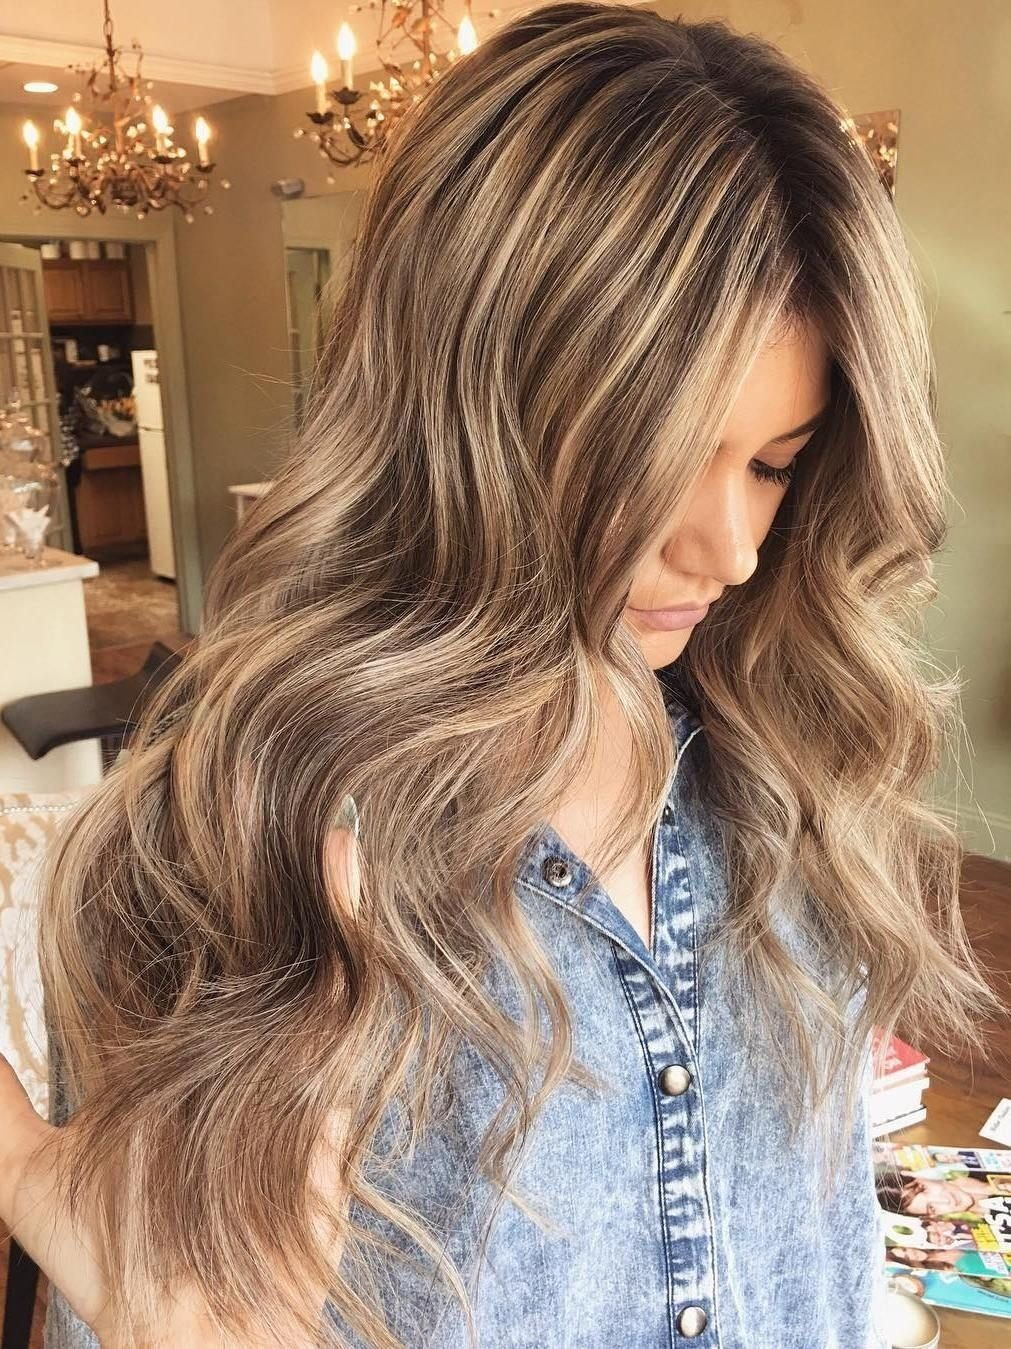 10 Attractive Highlight Ideas For Light Brown Hair 50 ideas for light brown hair with highlights and lowlights long 2020